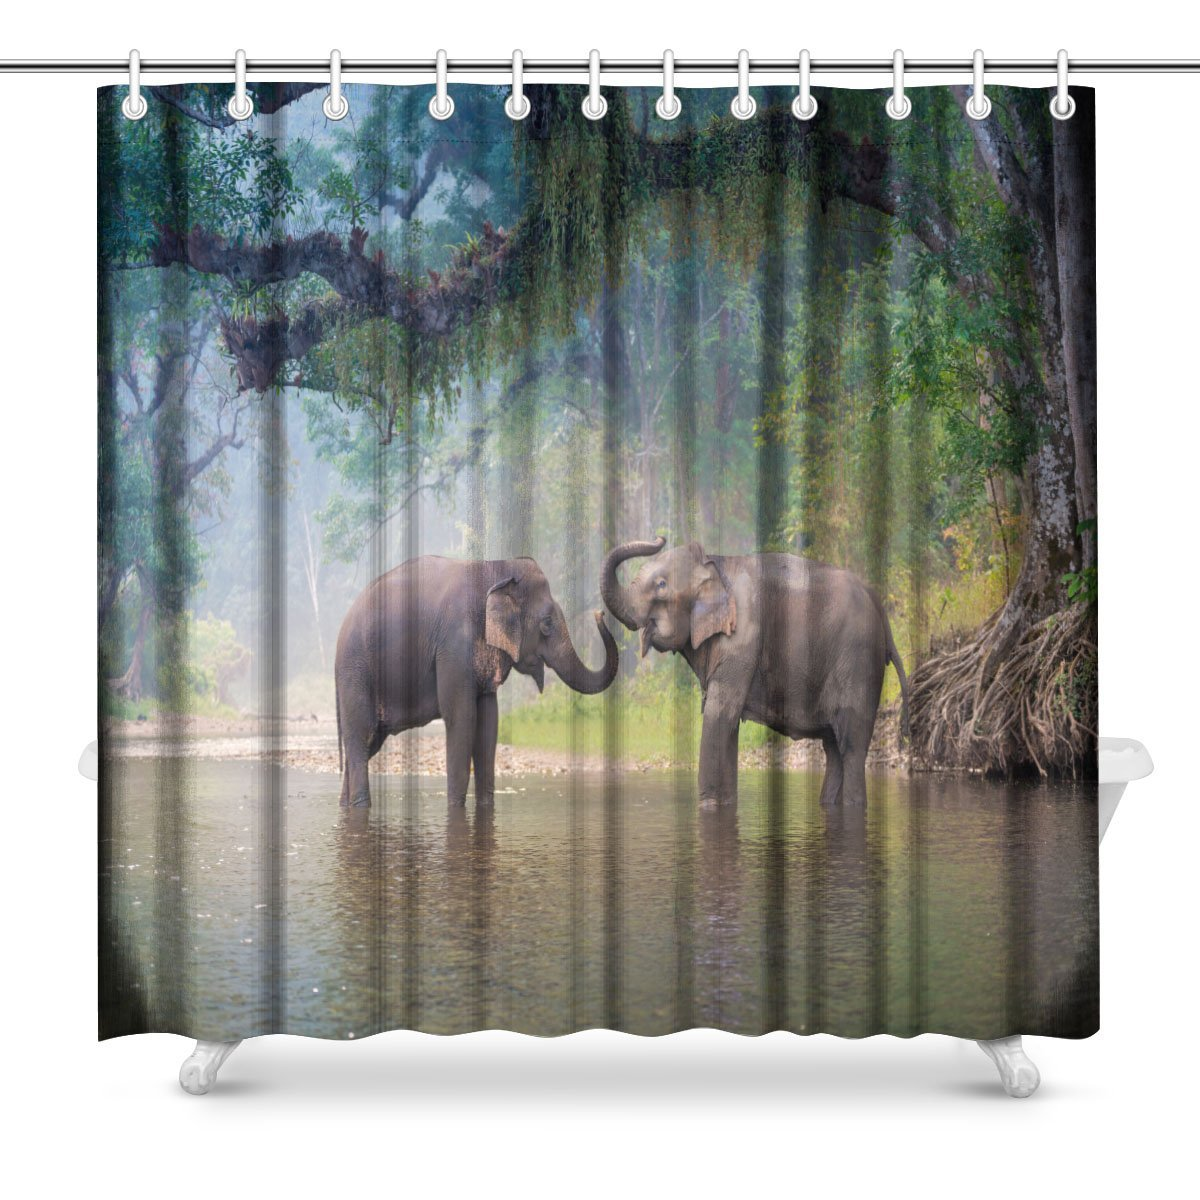 Asian Elephant in Natural River at Deep Forest, Thailand Bathroom Shower Curtain Accessories, 72W X 72L Inches Extra Long